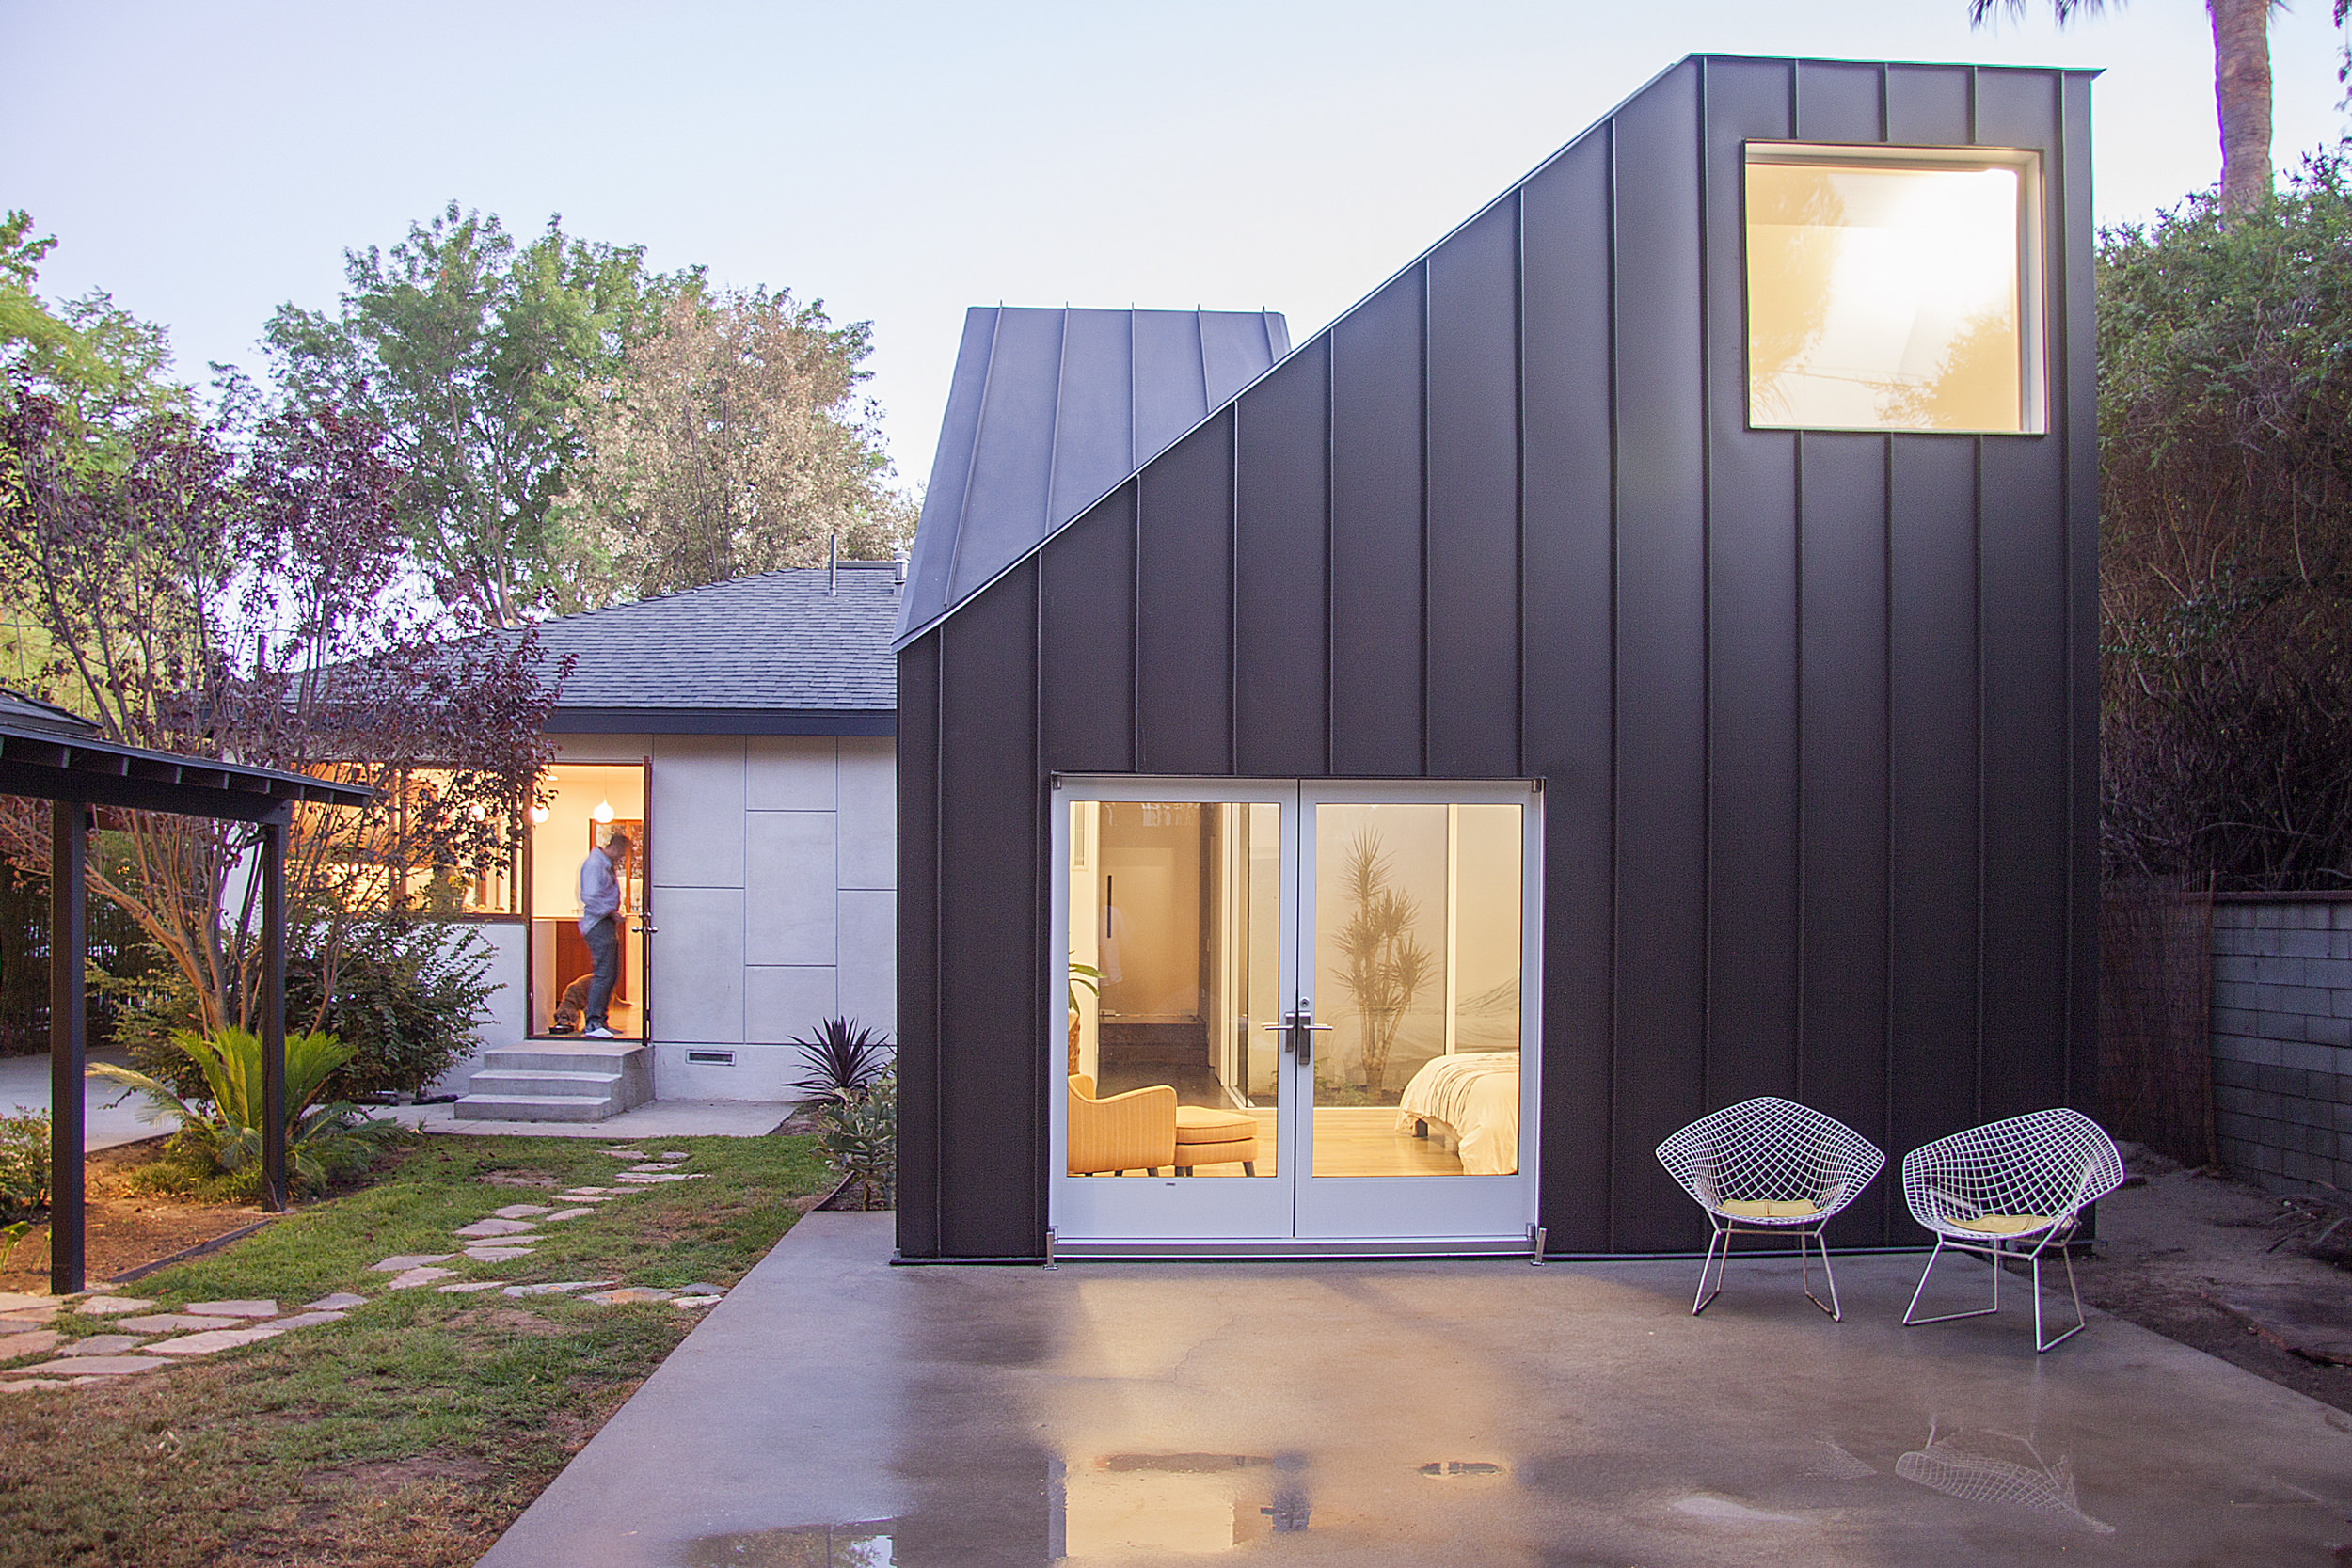 The exterior of the addition is clad in a dark standing seam metal that is continuous from the roof to the facade.